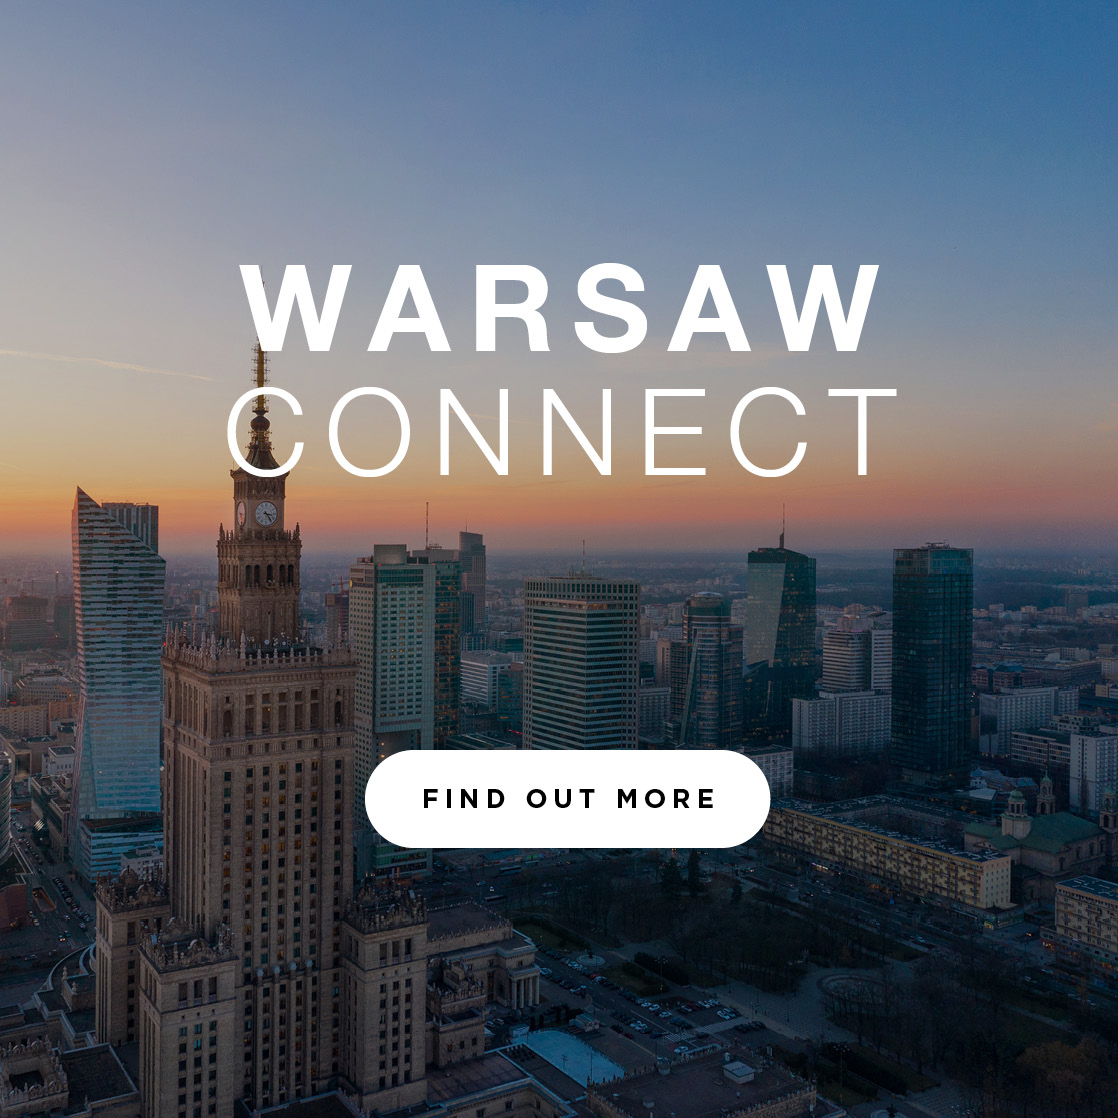 Warsaw Connect – Find out more